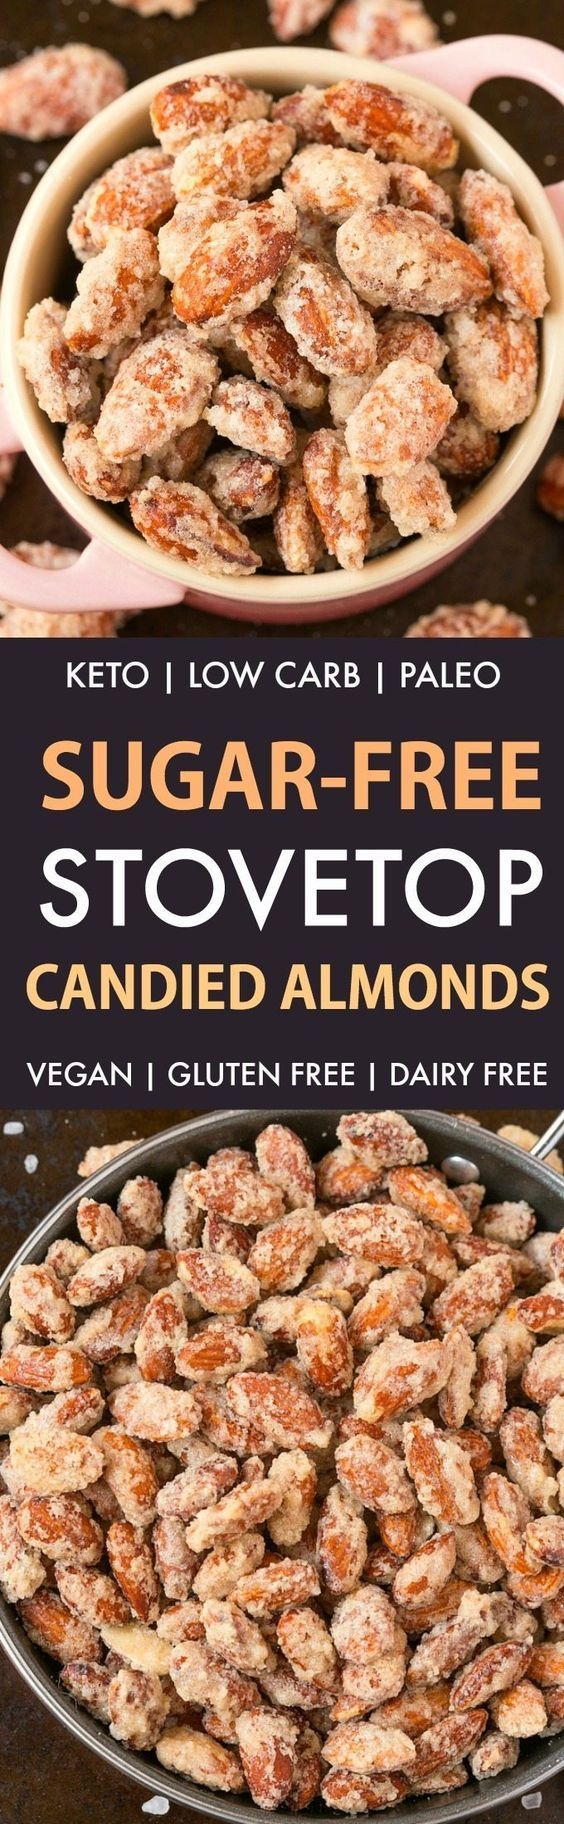 Easy Sugar-Free Candied Almonds (Keto, Low Carb, Paleo)- Stovetop made candied almonds made with zero sugar or oil- Perfect for holidays, gifts and every day guilt-free snacking! {vegan, gluten free, dairy free recipe}- #almonds #sugarfree #lowcarb #ketodessert | Recipe on thebigmansworld.com